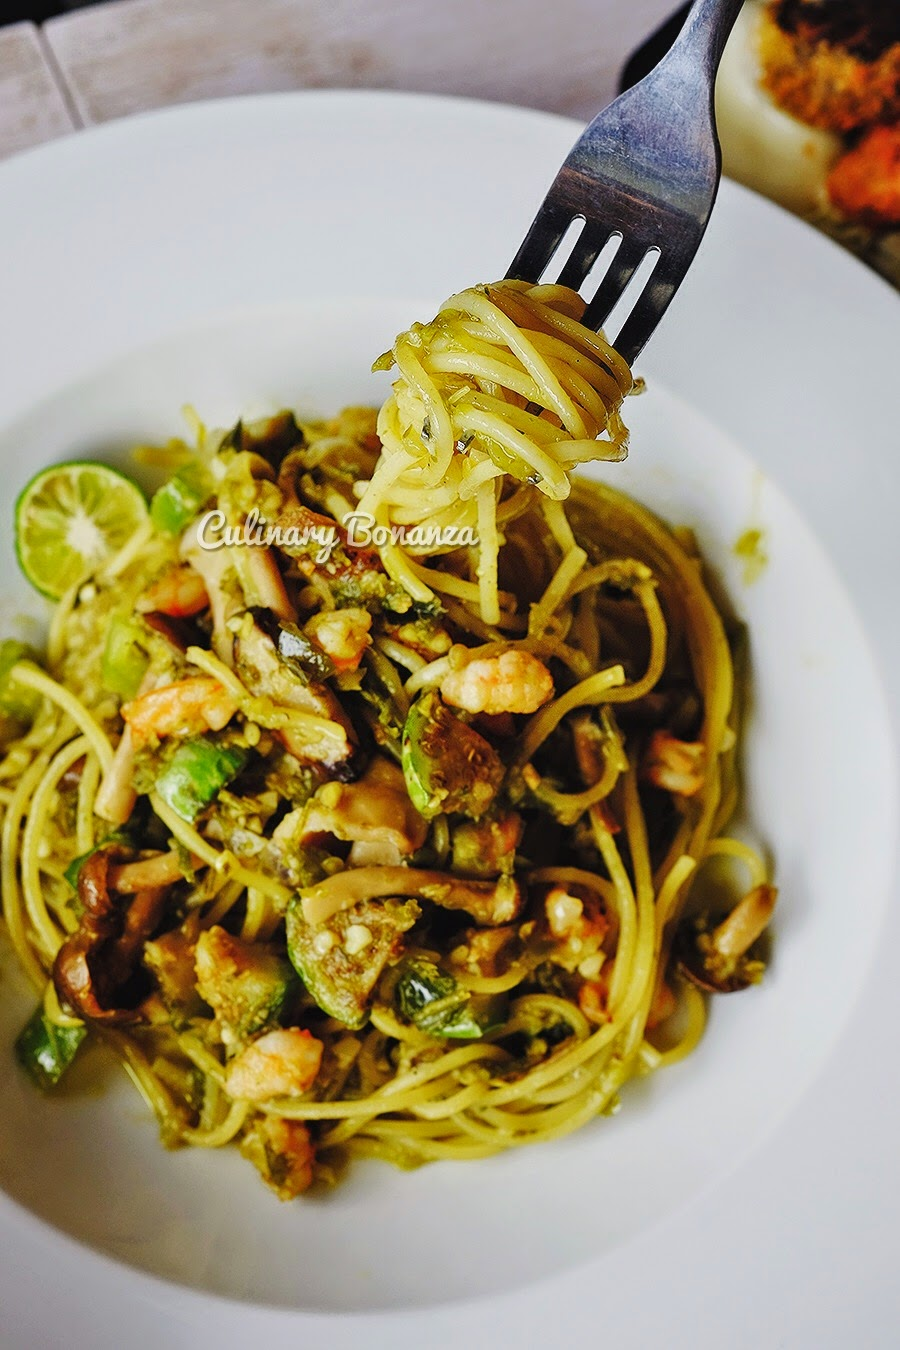 Cabe Ijo Bianco - spaghetti with Indonesia's most beloved green chili (cabe ijo), squeeze the kalamansi for some tangy kick